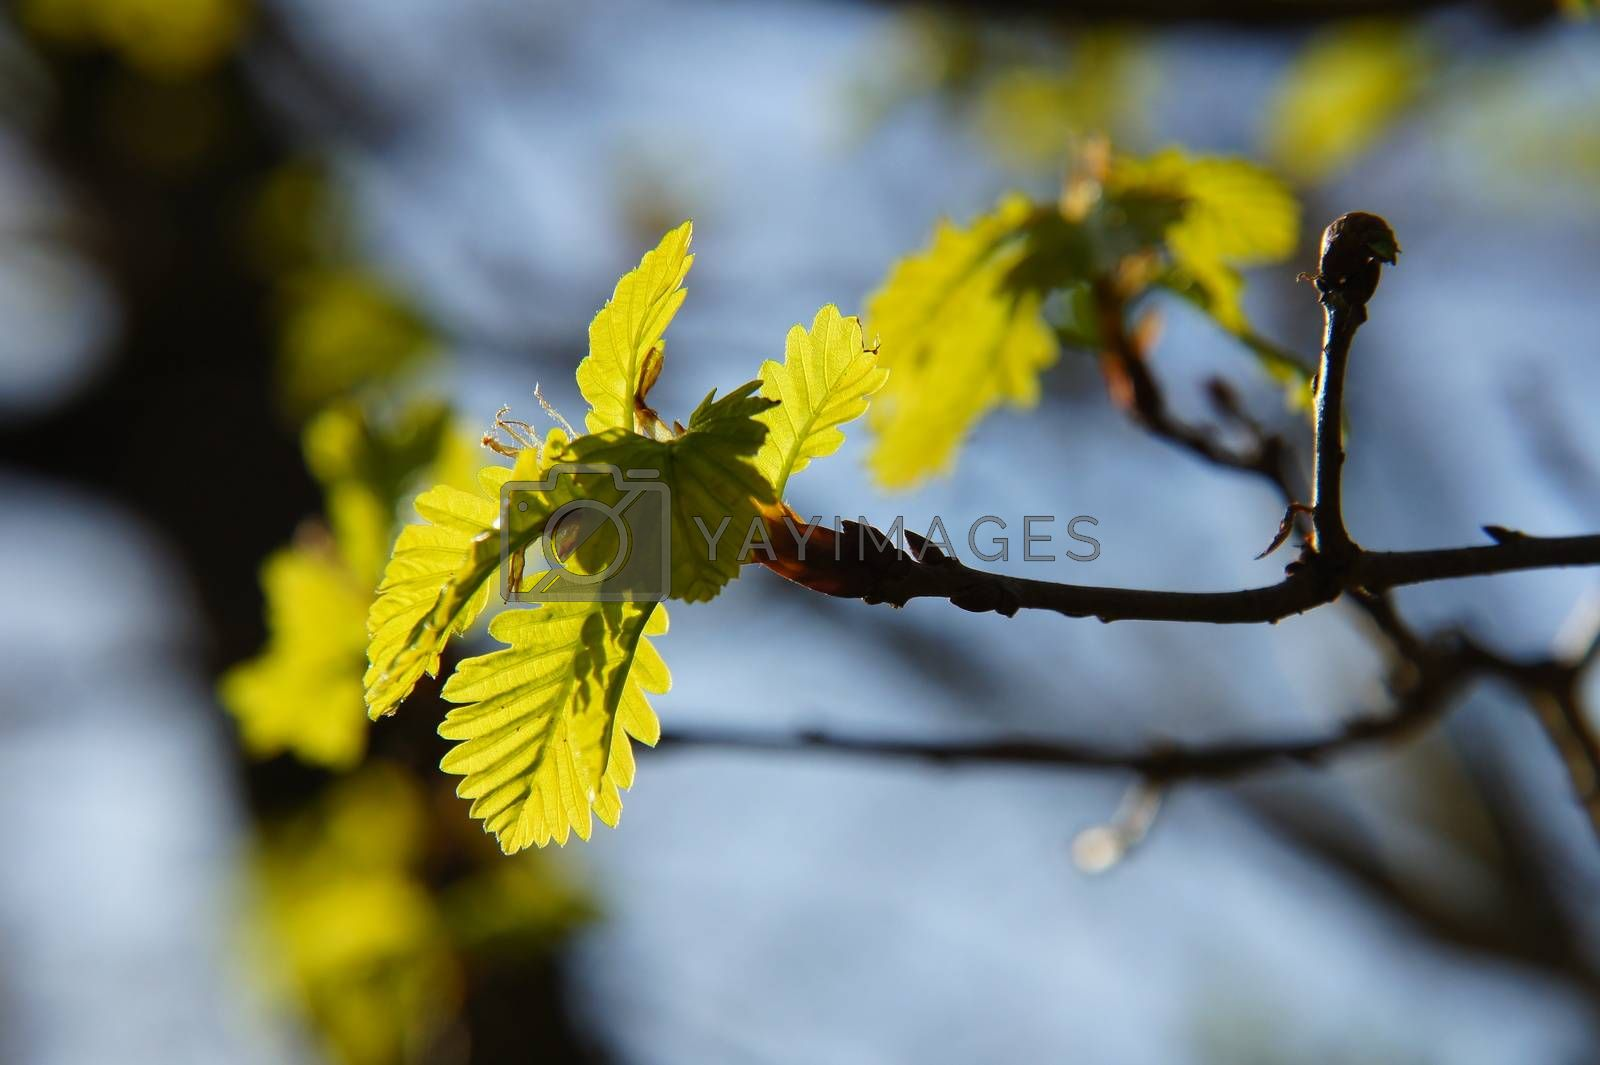 Royalty free image of young oak leaves in backlight by azurin